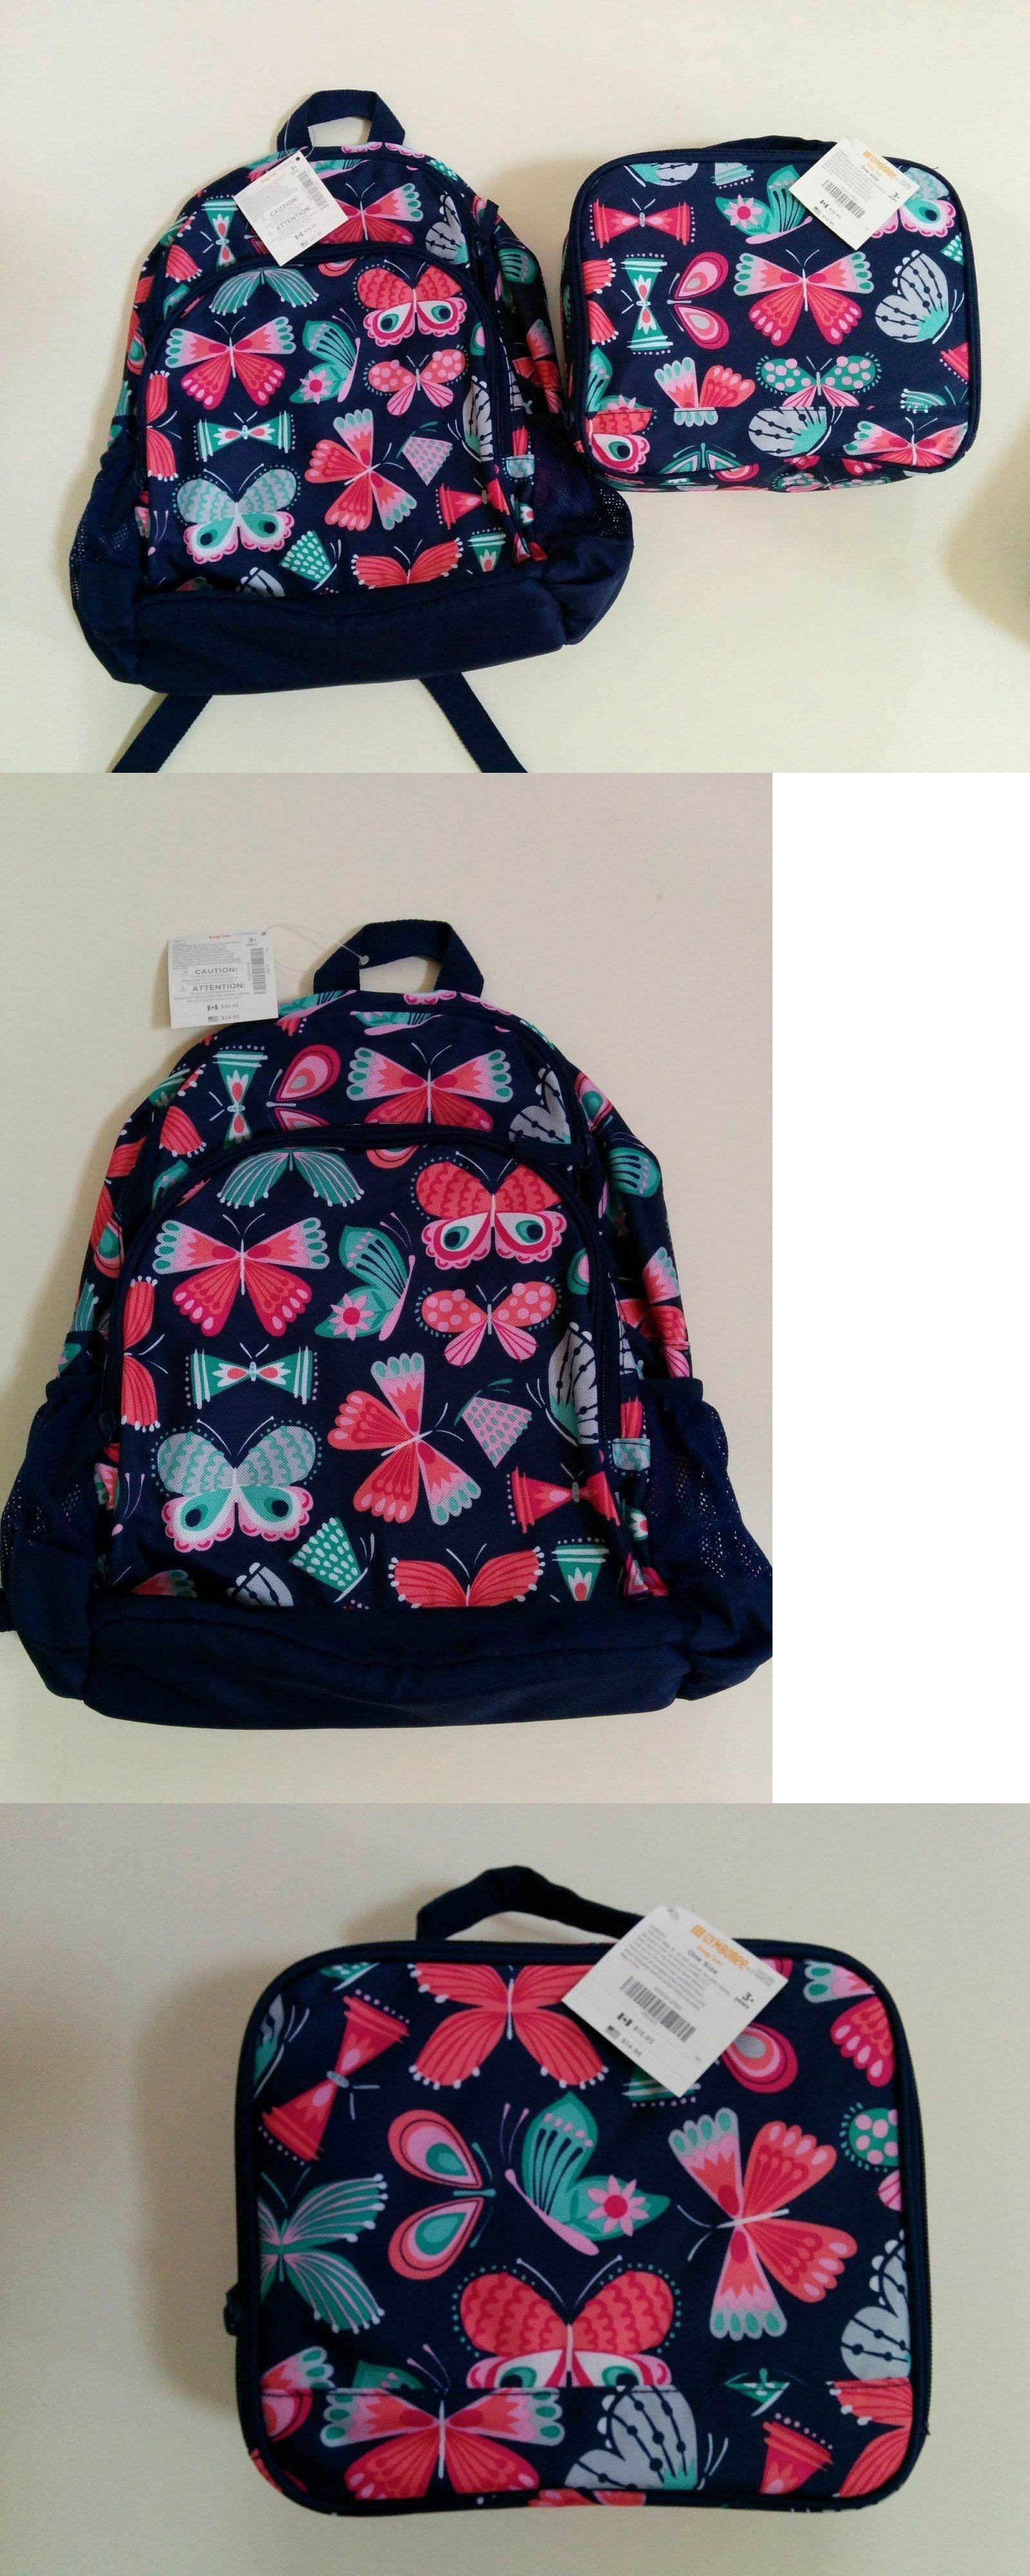 Backpacks 57917: Nwt Gymboree Girls Blue Butterfly Backpack And Lunchbox Set -> BUY IT NOW ONLY: $33.95 on eBay!